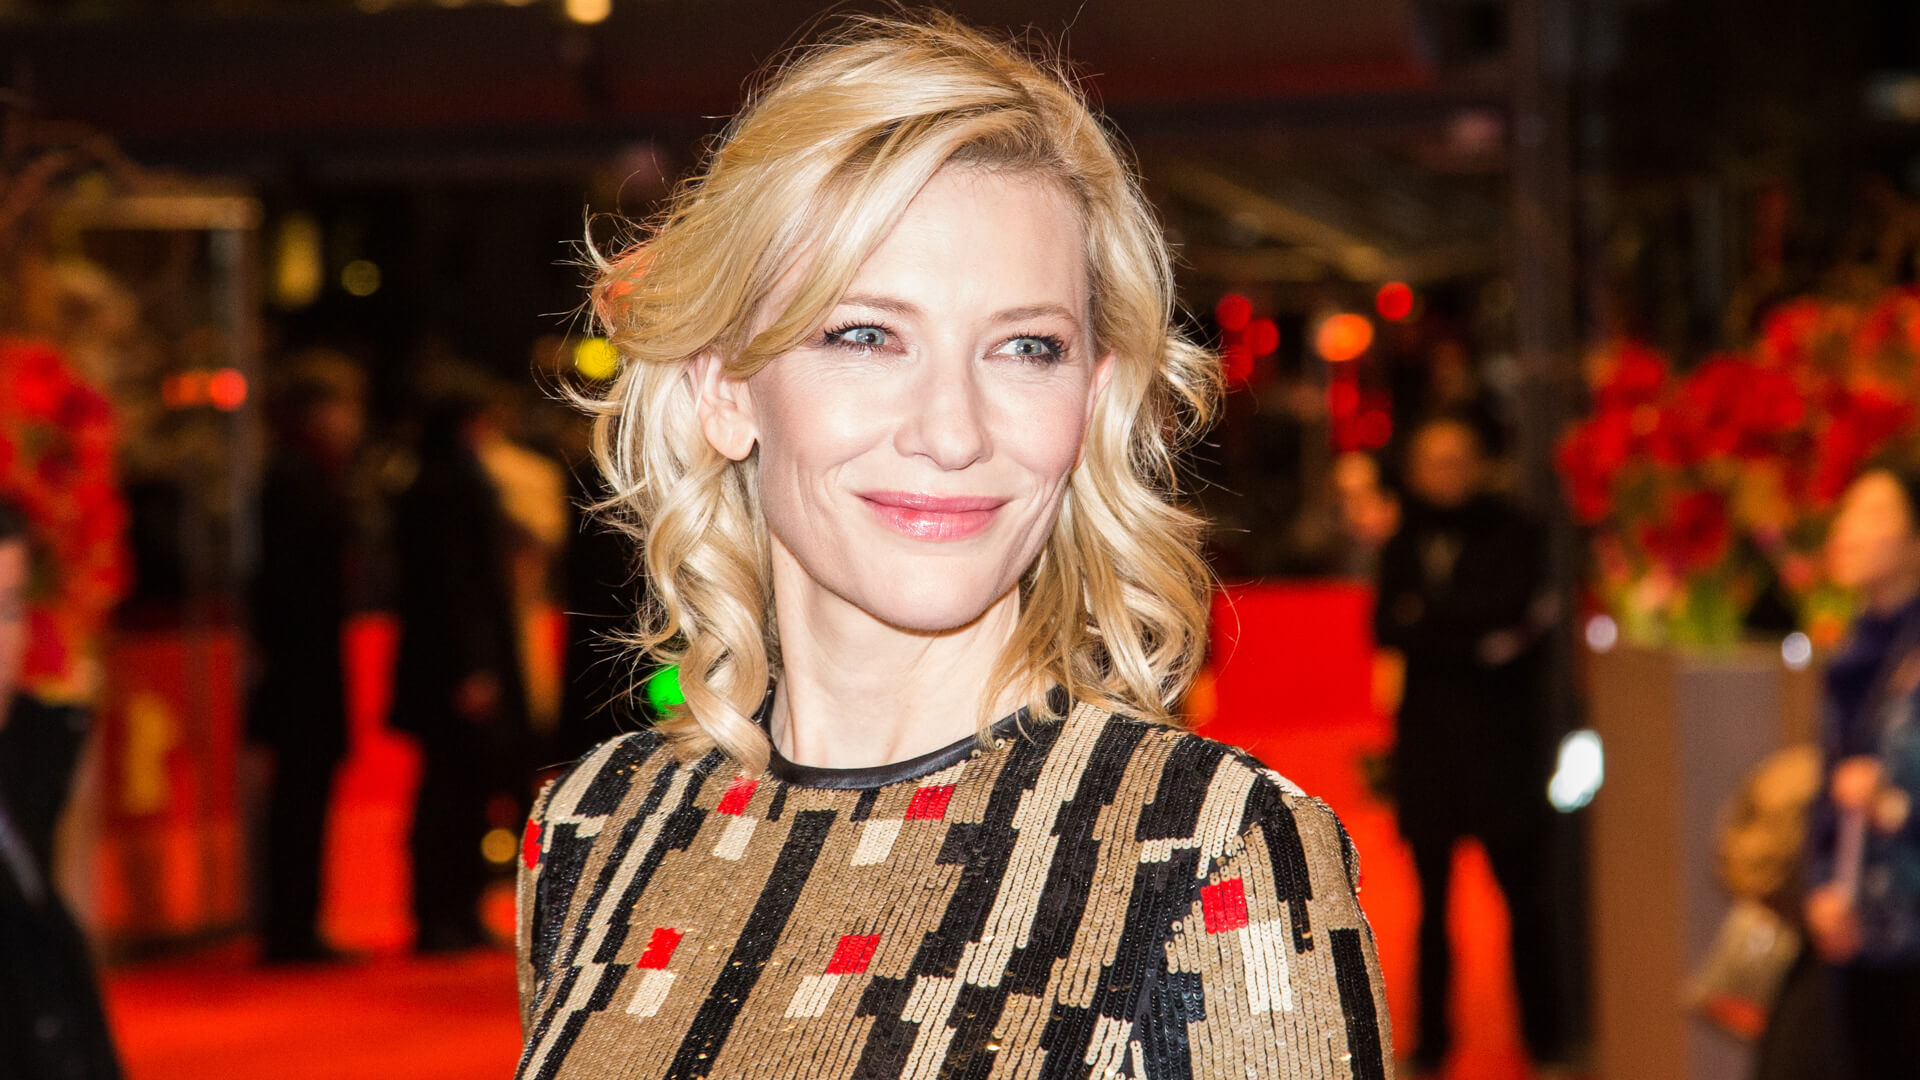 Cate Blanchett attends the 'Cinderella' premiere during the 65th Berlinale Film Festival at Berlinale Palace on February 13, 2015 in Berlin, Germany.